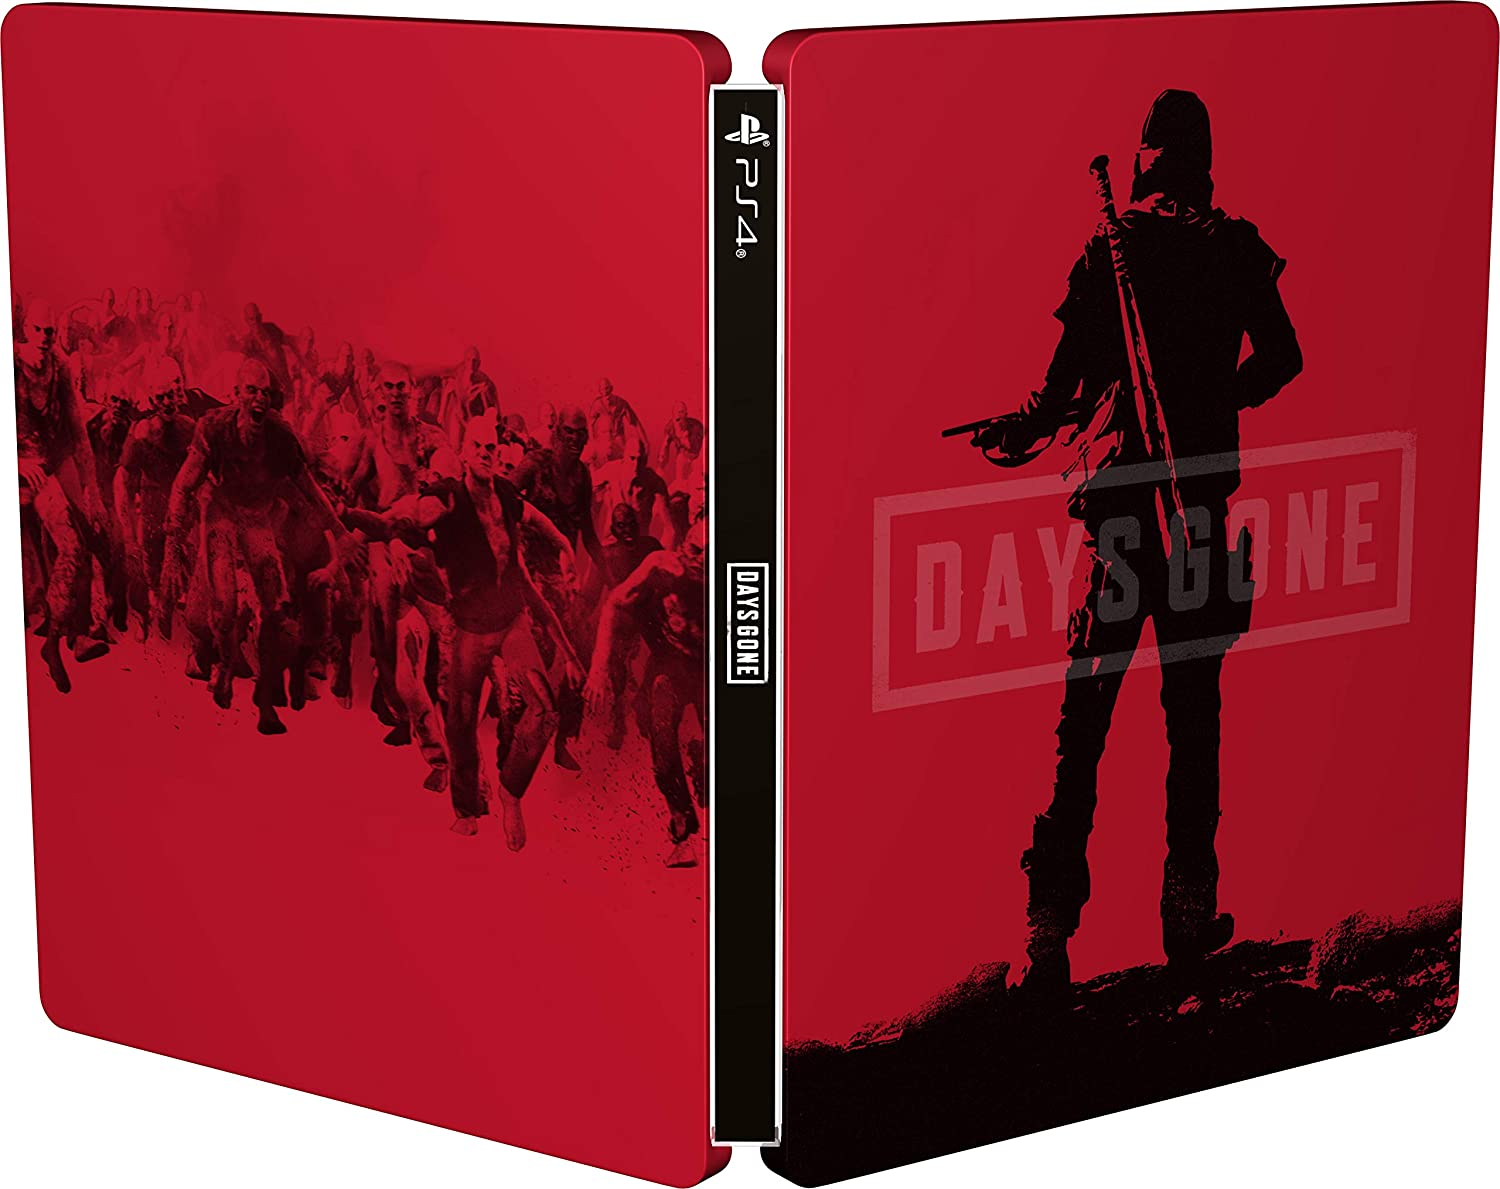 Days Gone Ps4 Steel Book Only Buy One Give One Original Game Cases & Boxes